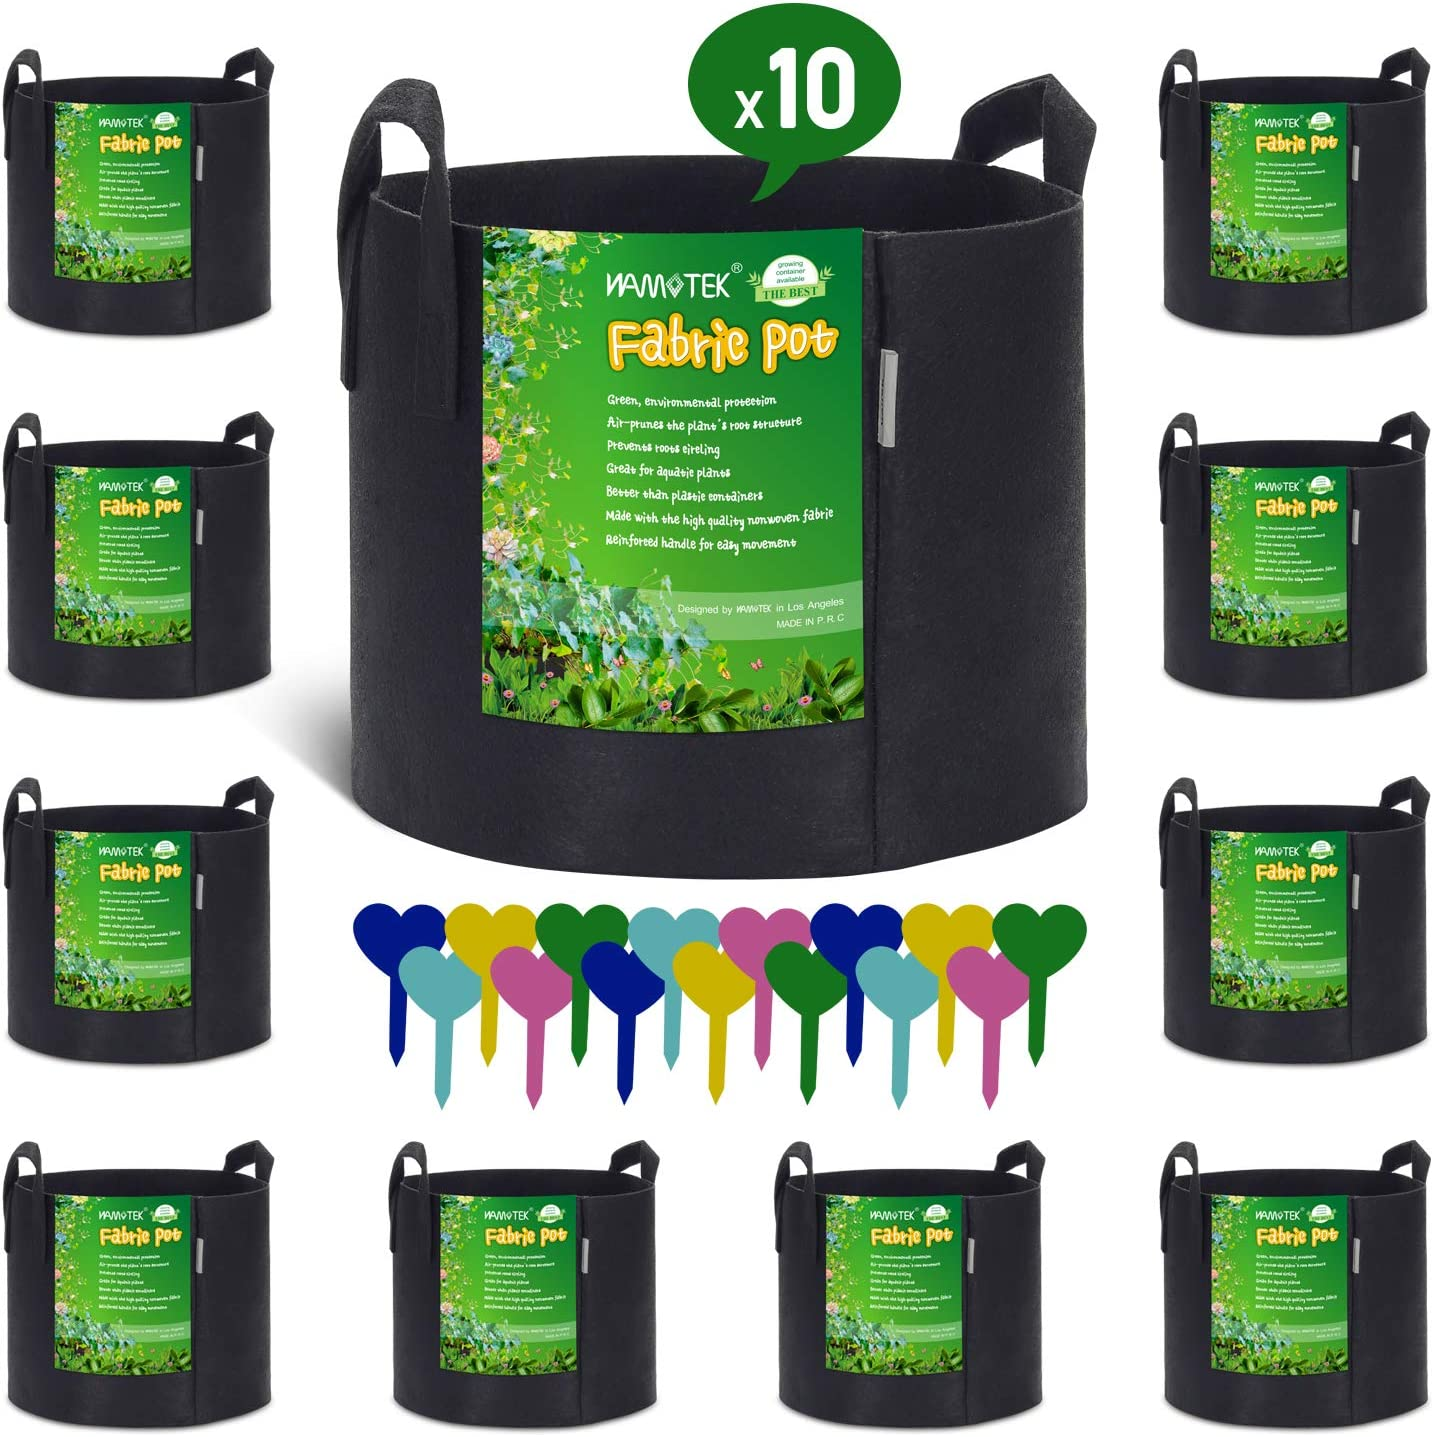 NAMOTEK 10-Pack 5 Gallon Grow Bags for Potato or Plant Container, Thickened Nonwoven Aeration Fabric Pot Plant Grow Bags with Handled